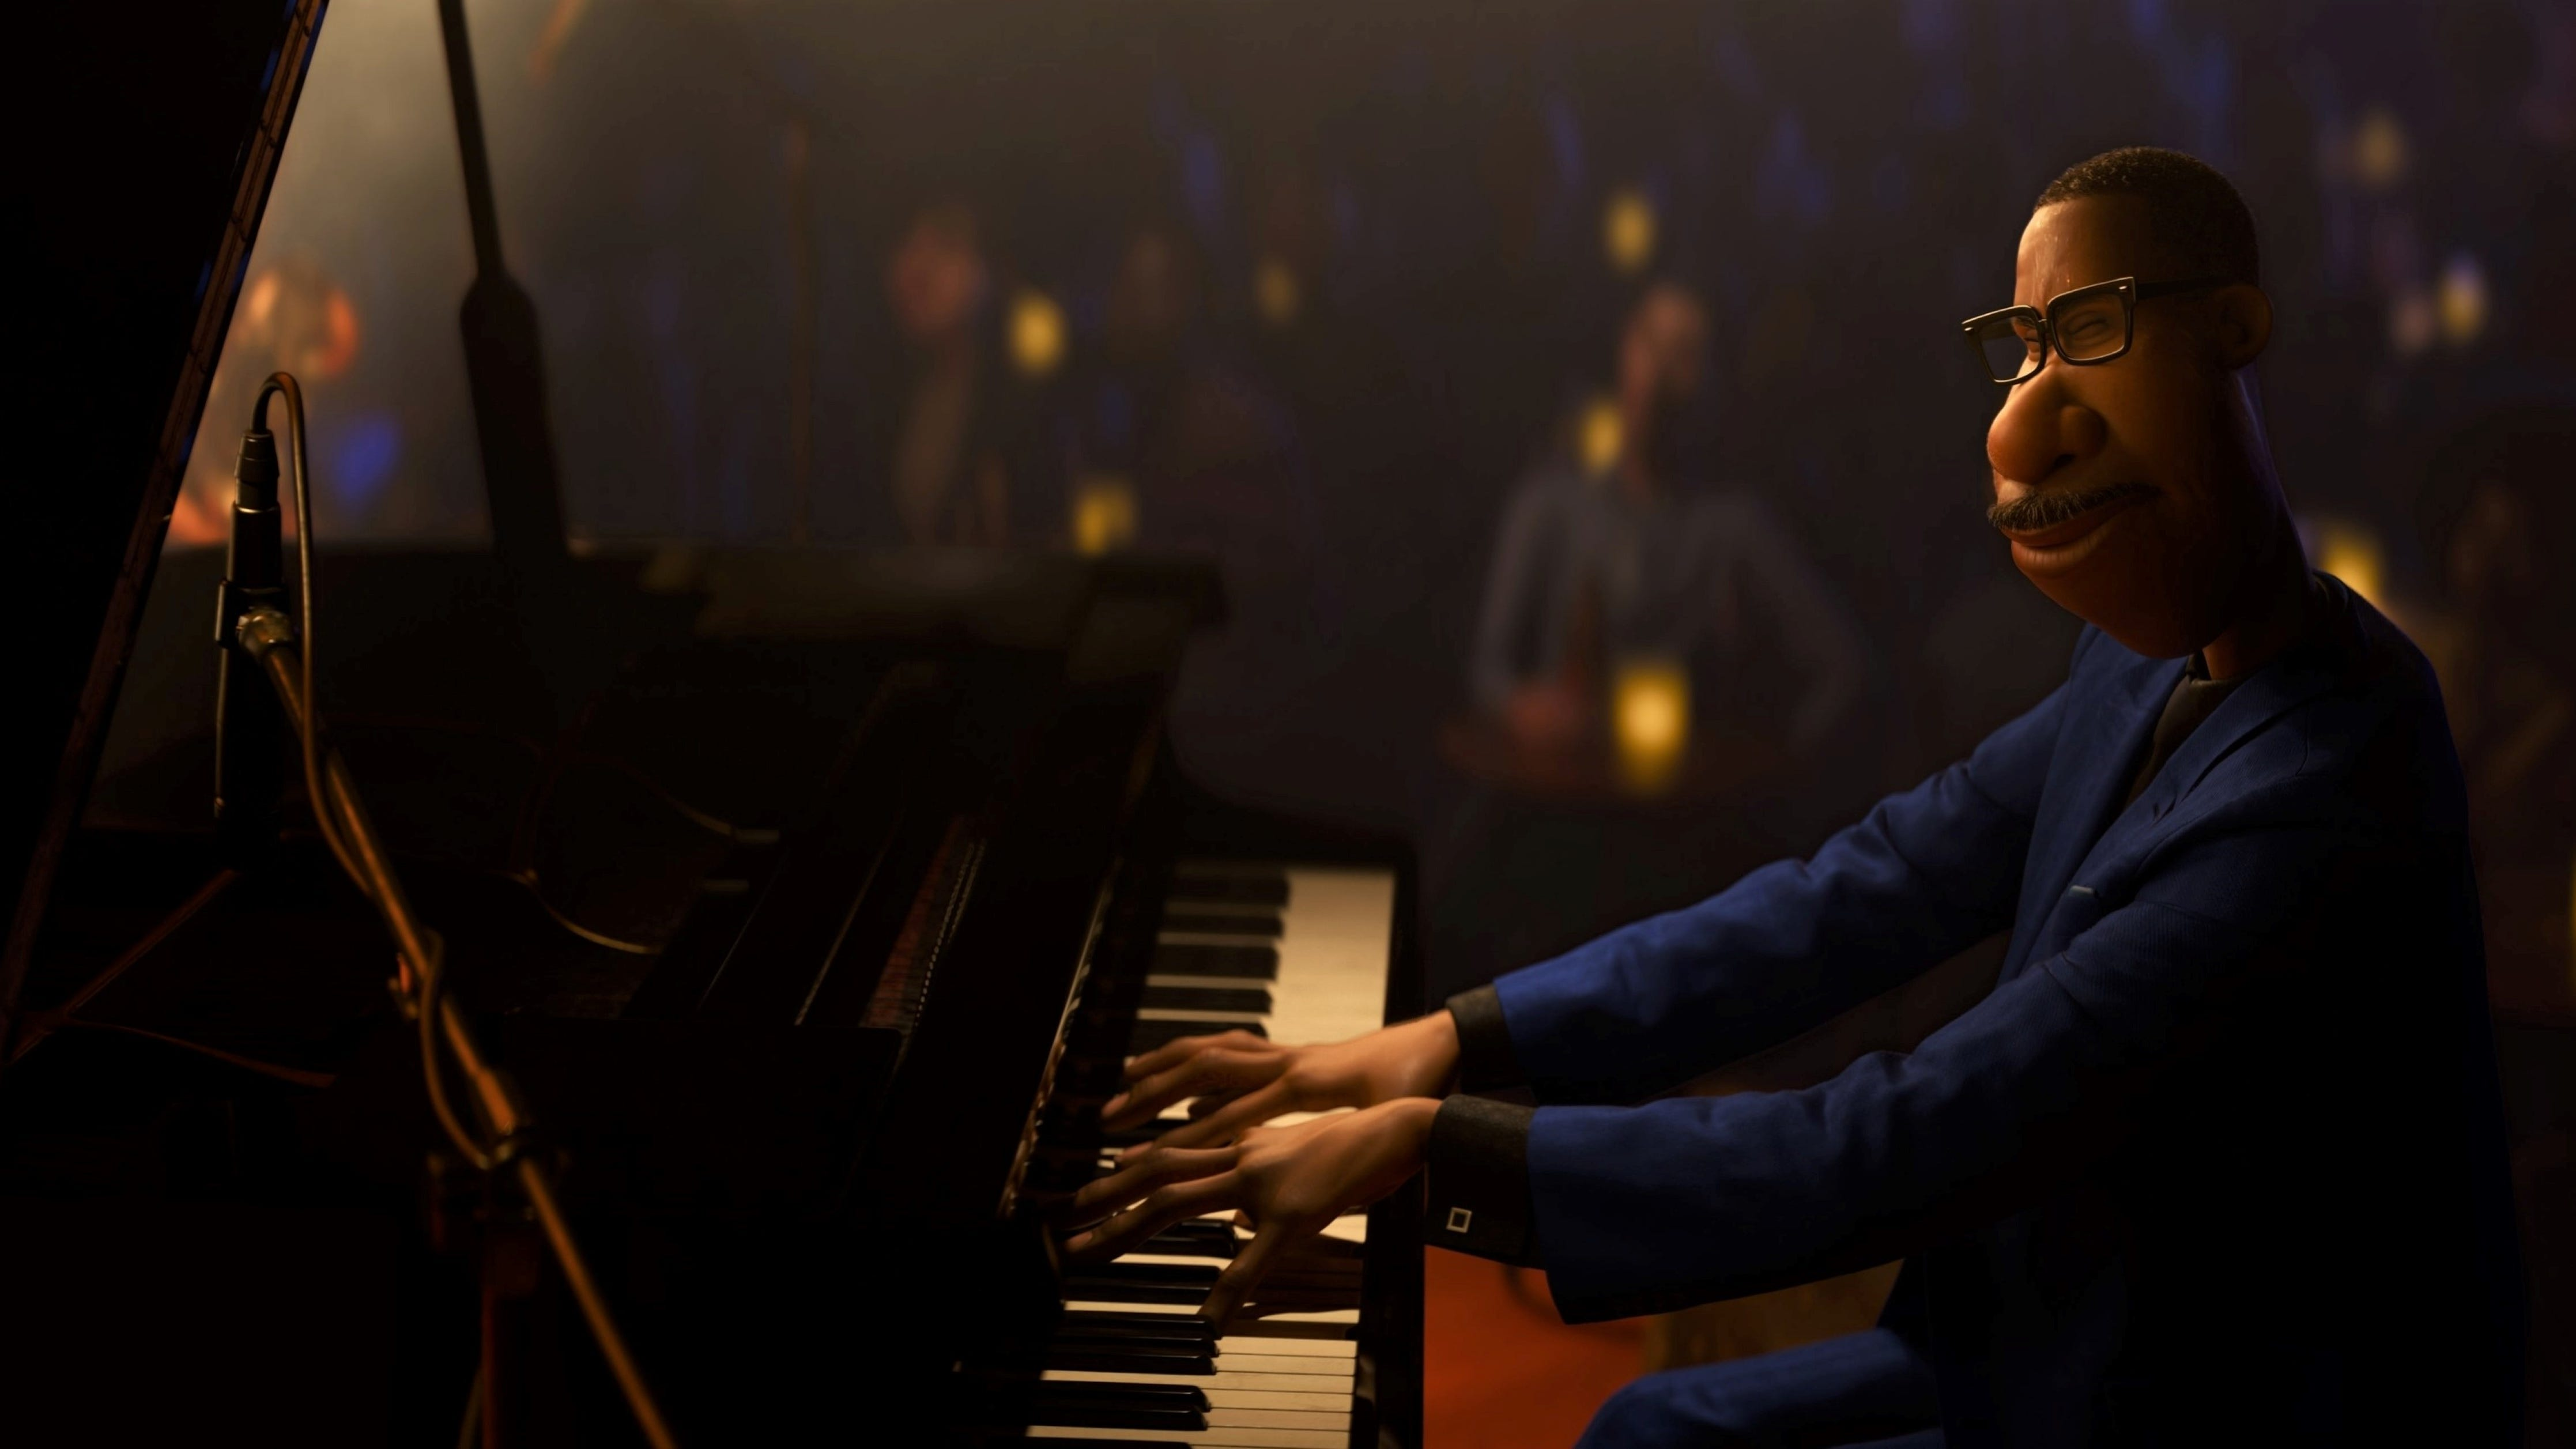 Movie review: Disney and Pixar make sure that 'Soul' hits the right notes